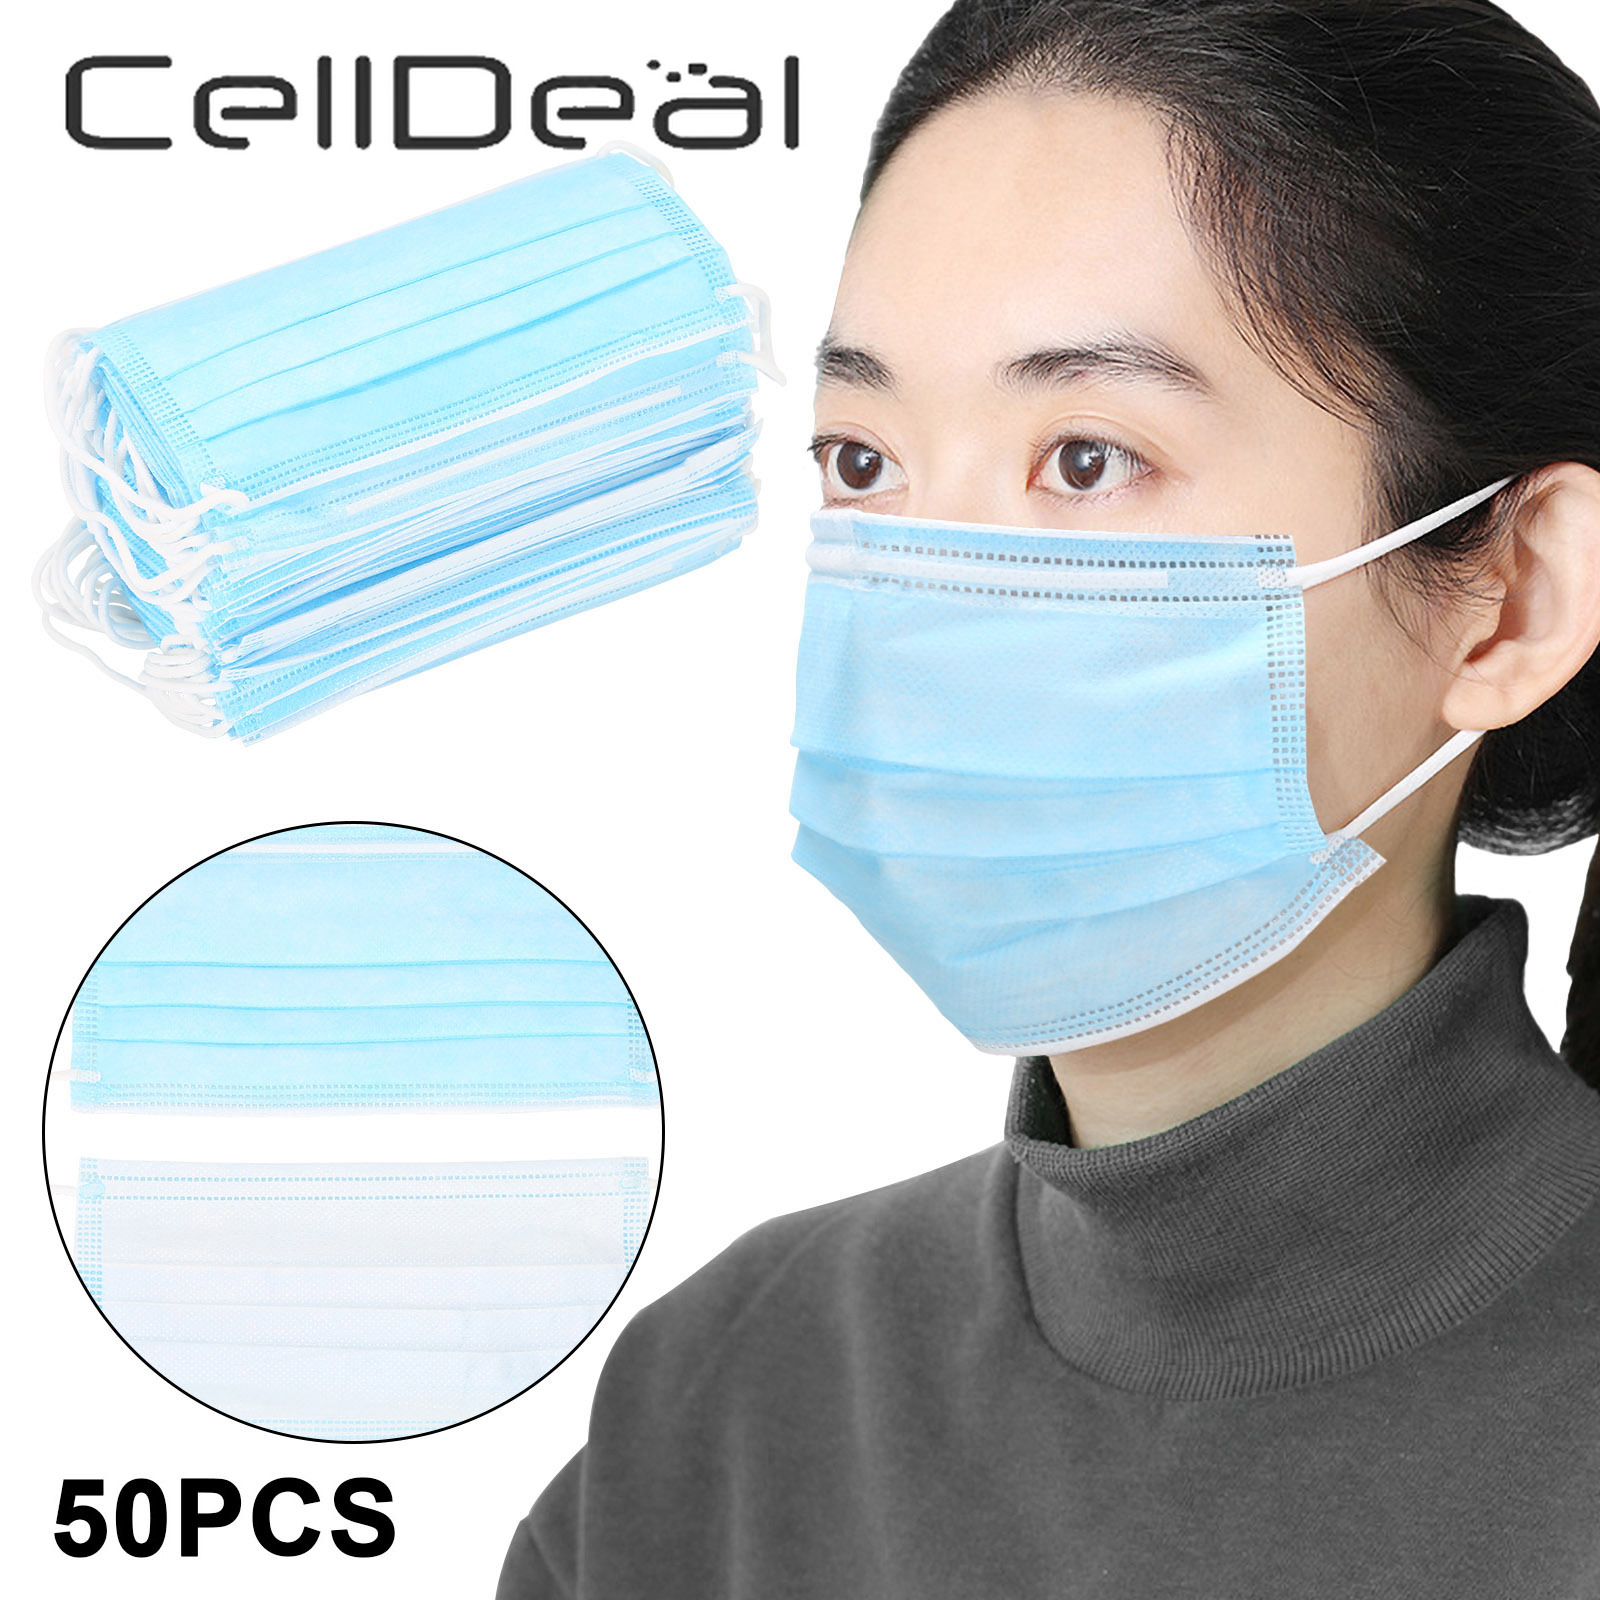 CellDeal 50 PCS 3 Layers Protective Face Mouth Masks Daily Protect Mask Facial Dust-Proof Safety Masks Unisex Cotton  Microfiber